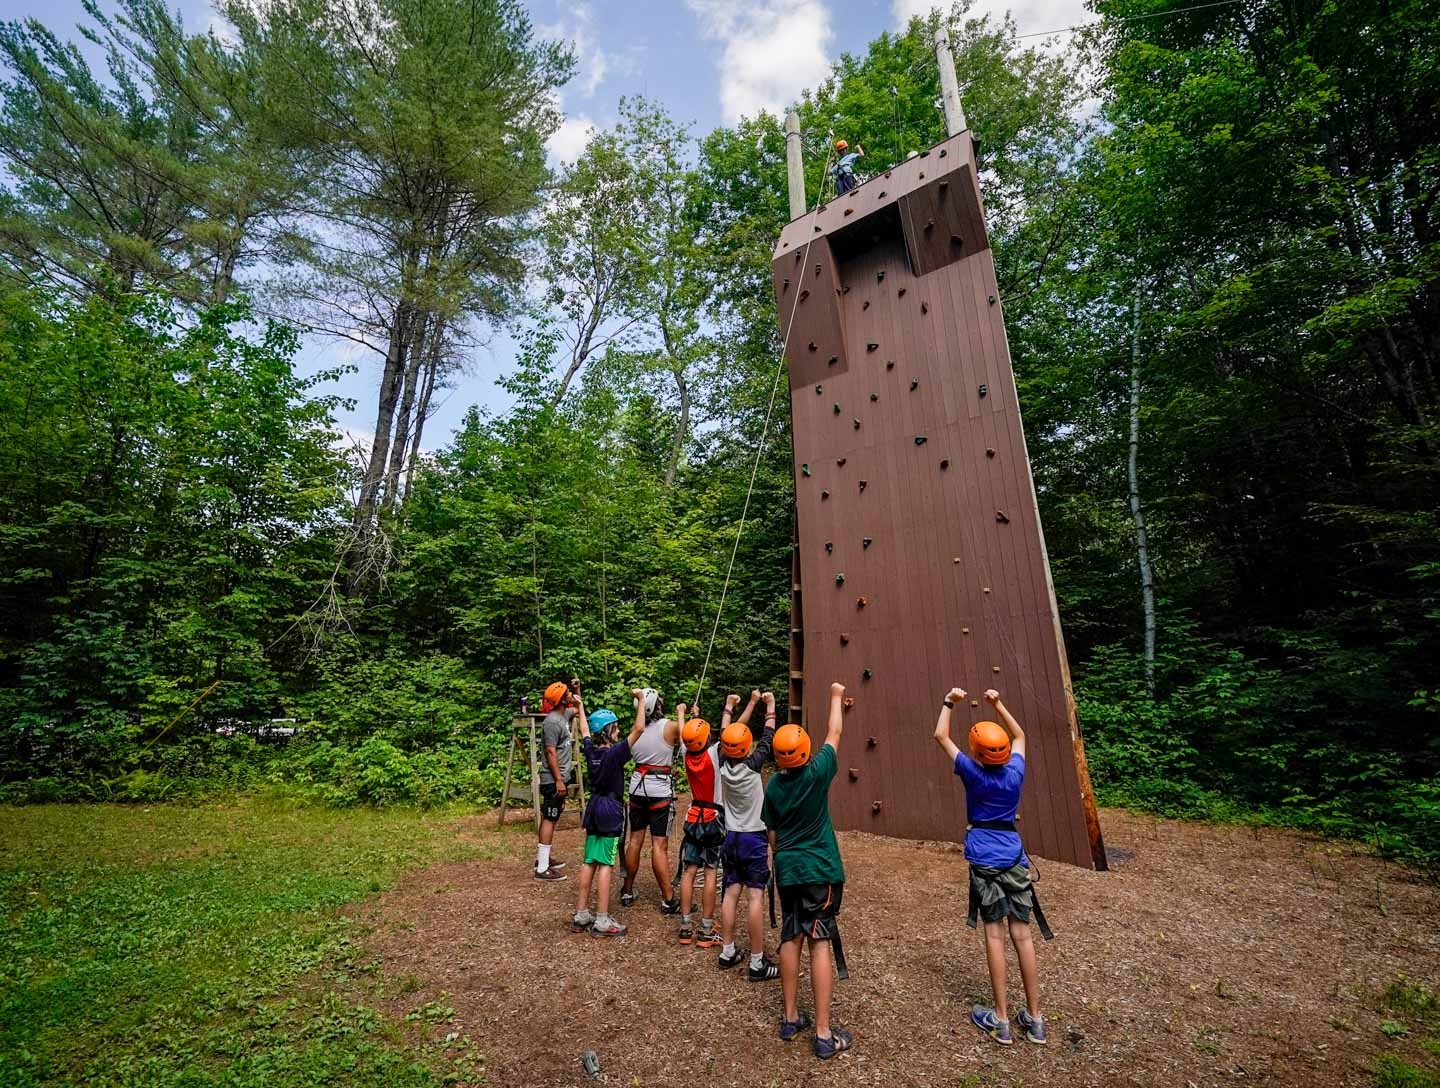 camper at top of rock climbing wall while a group at the bottom celebrate